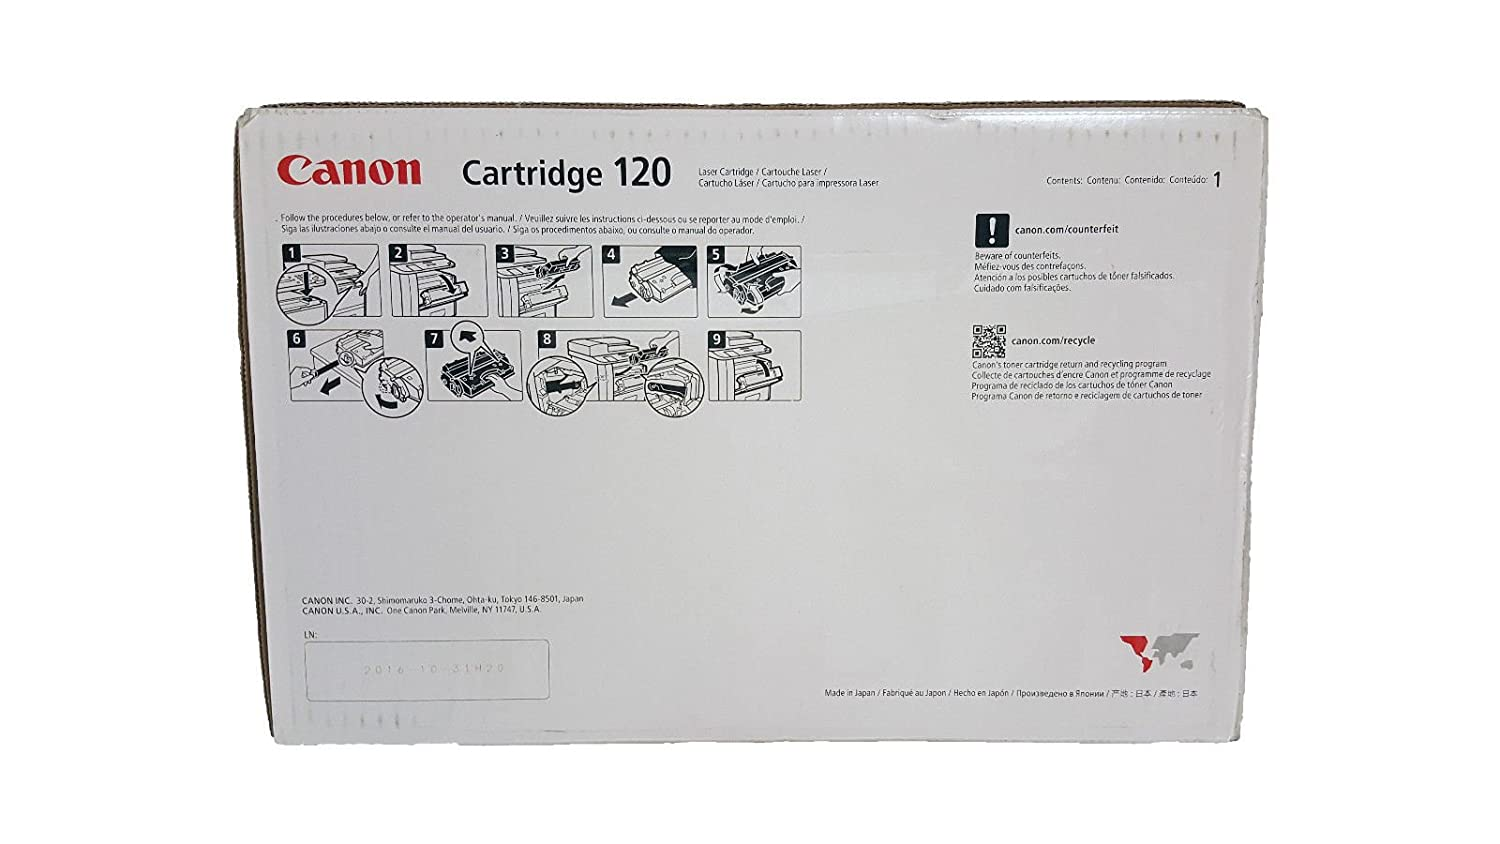 Canon Imageclass D1350 Toner Cartridge Oem Made By Upper Red Premium Ir 5000 Office Products